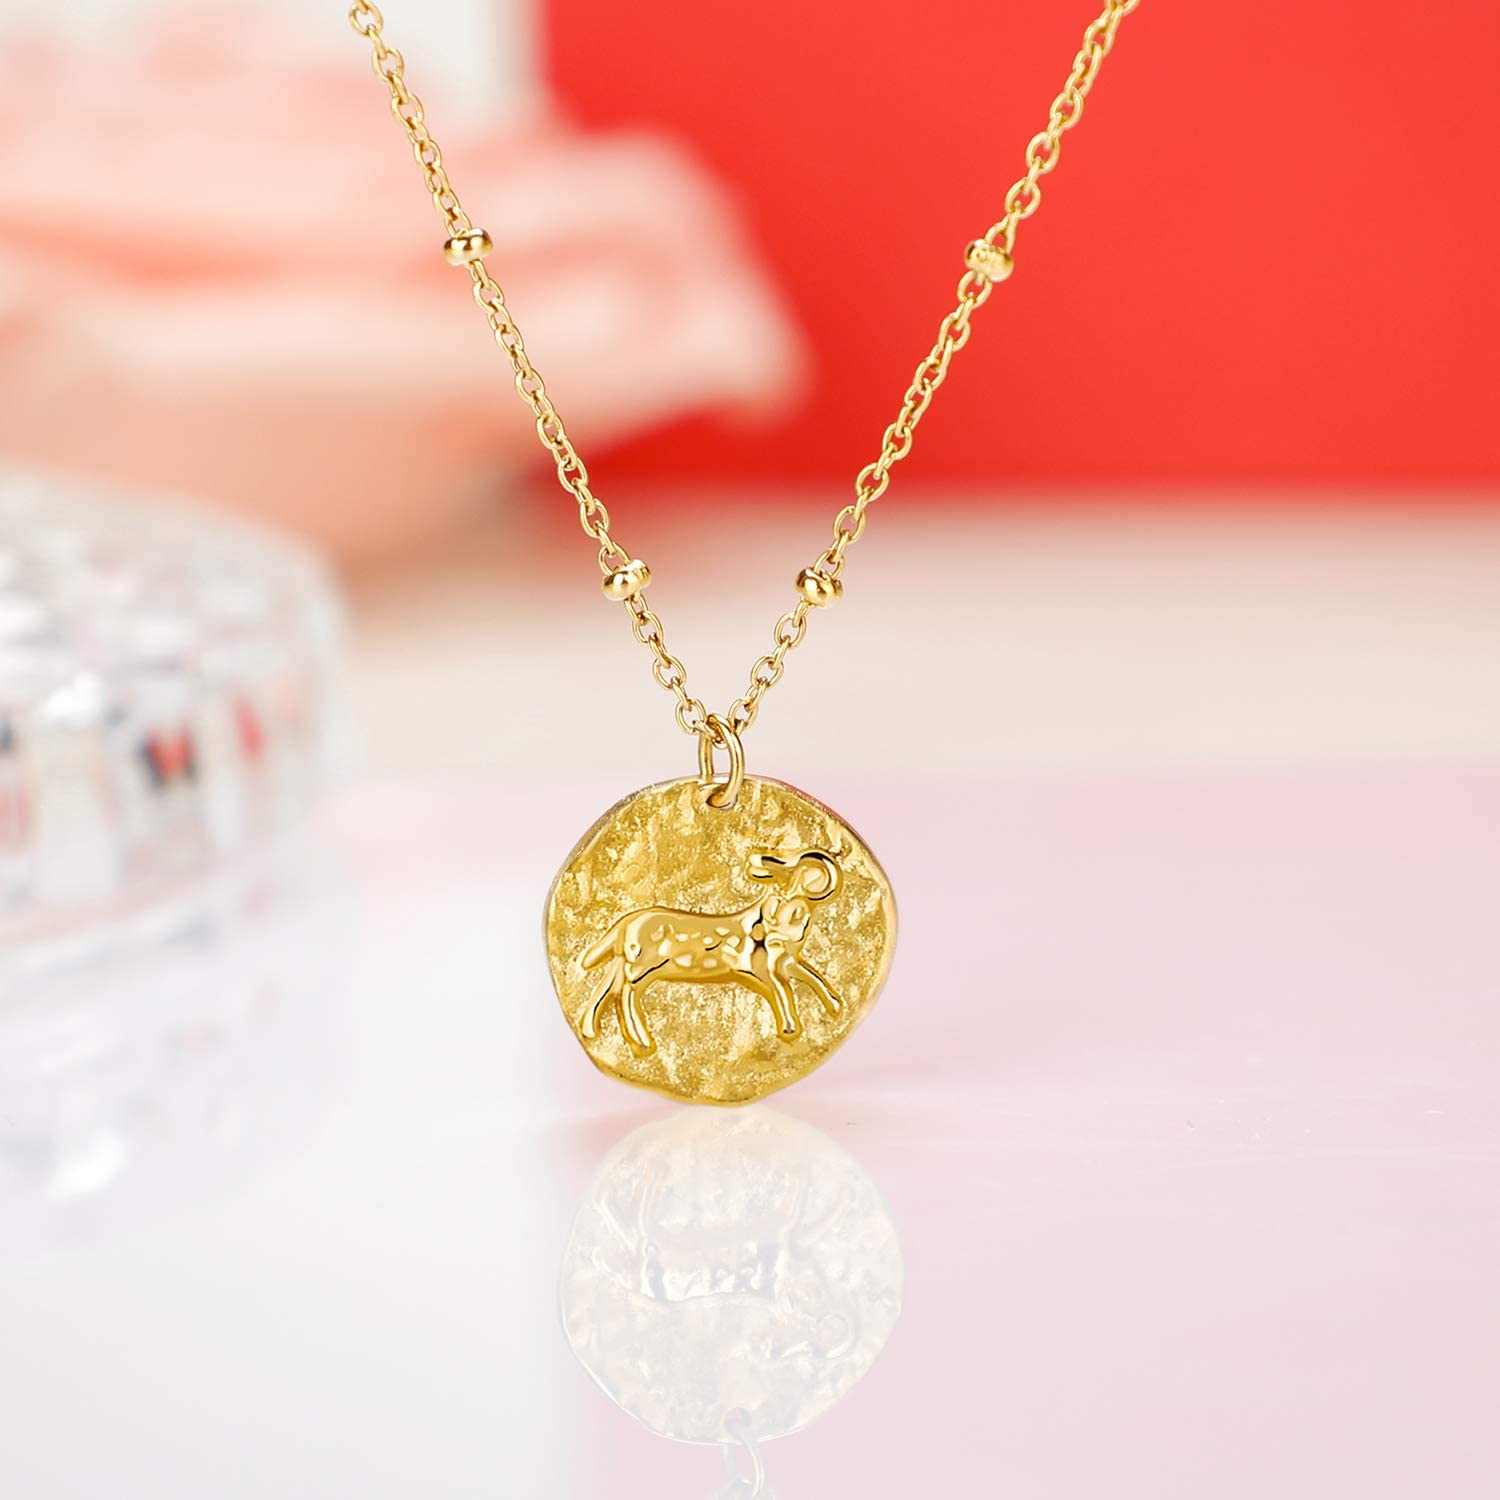 Moronly Zodiac Necklaces for Women 12 Constellation Necklace Stainless Steel Horoscope Astrology Chain Necklace 14K Gold Plated Jewelry Hypoallergenic/…